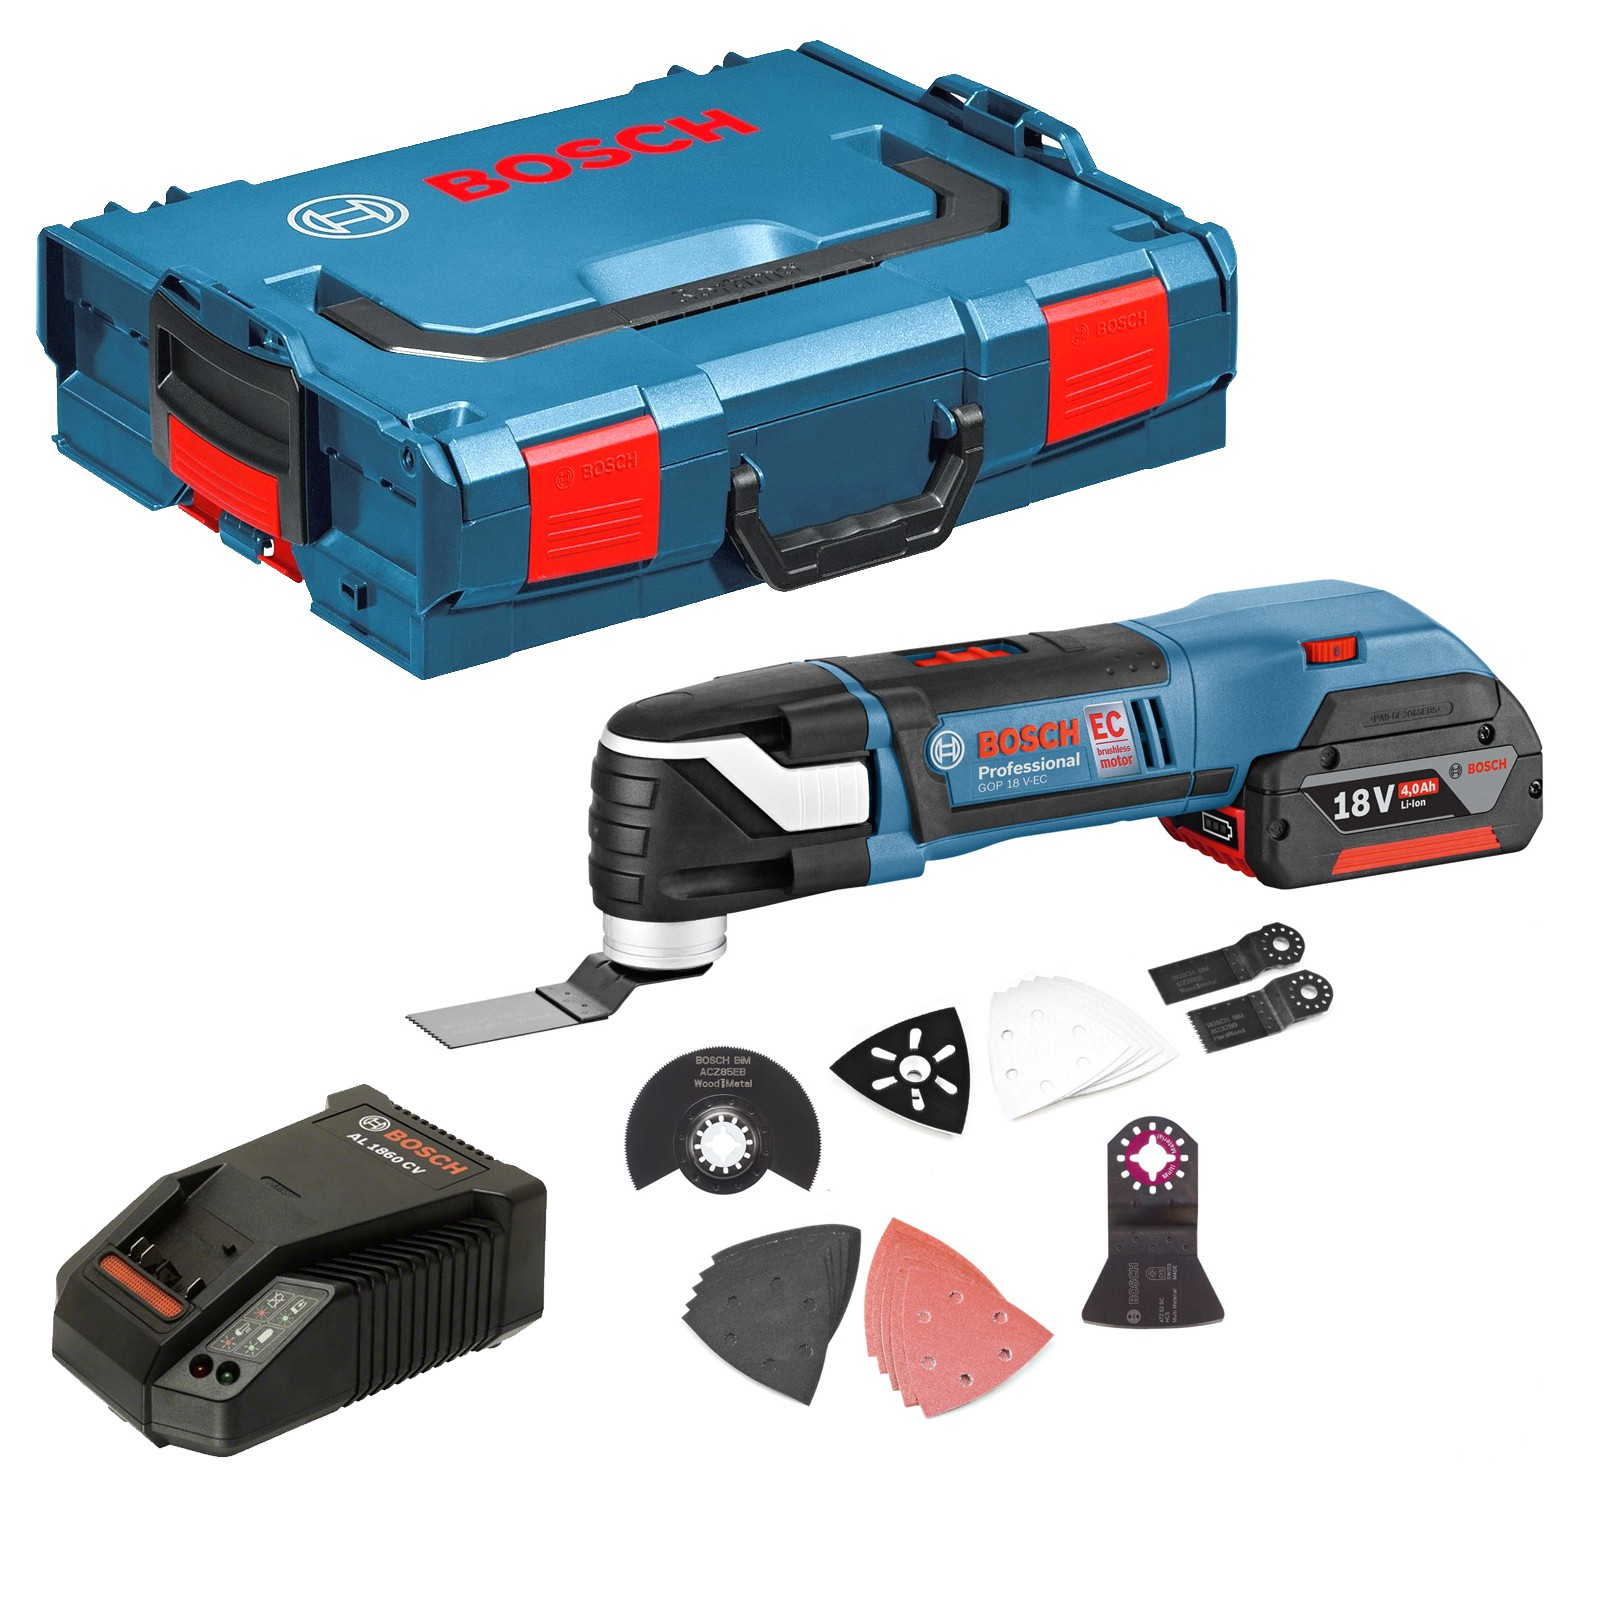 bosch gop 18 v ec brushless multi cutter with 20 accessories inc 1x 4ah battery charger in l. Black Bedroom Furniture Sets. Home Design Ideas